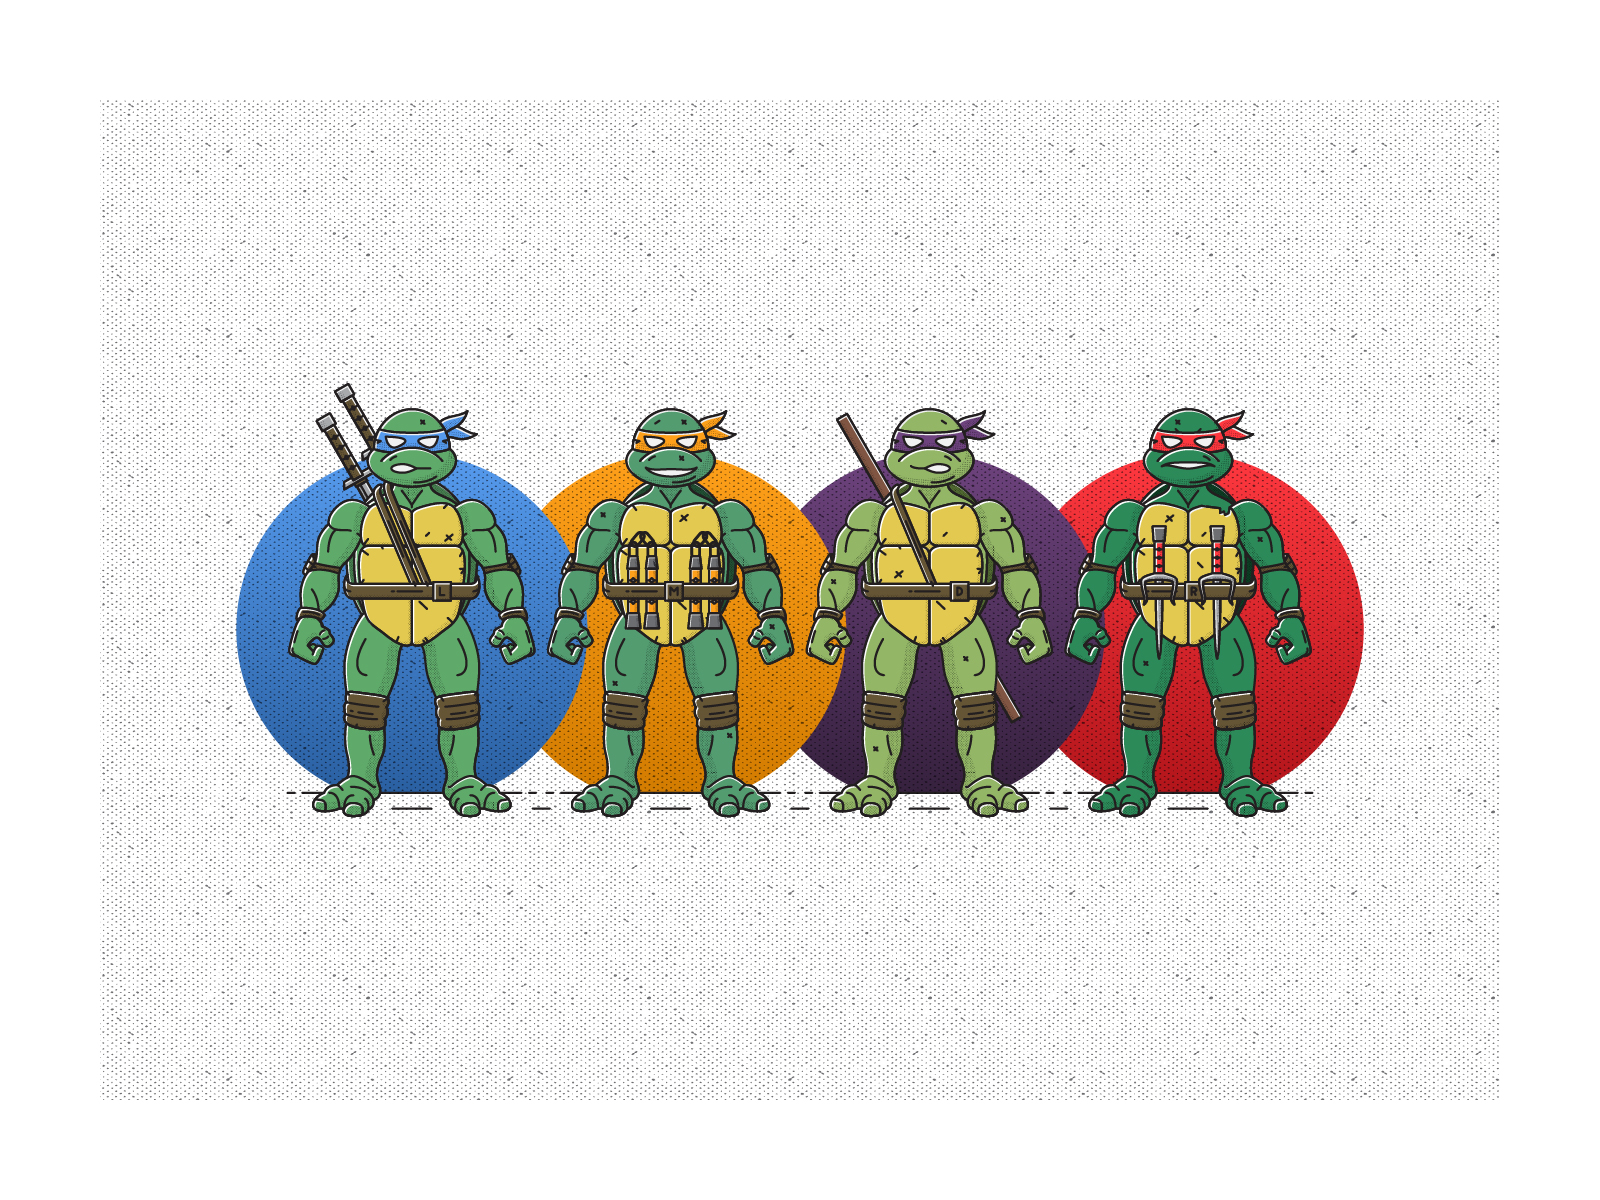 Party dudes - These turtles have been and will always be some of my favorite superheroes! Mikey being my absolute fave. PARTY!! This is a series of these fellas in action figure form.